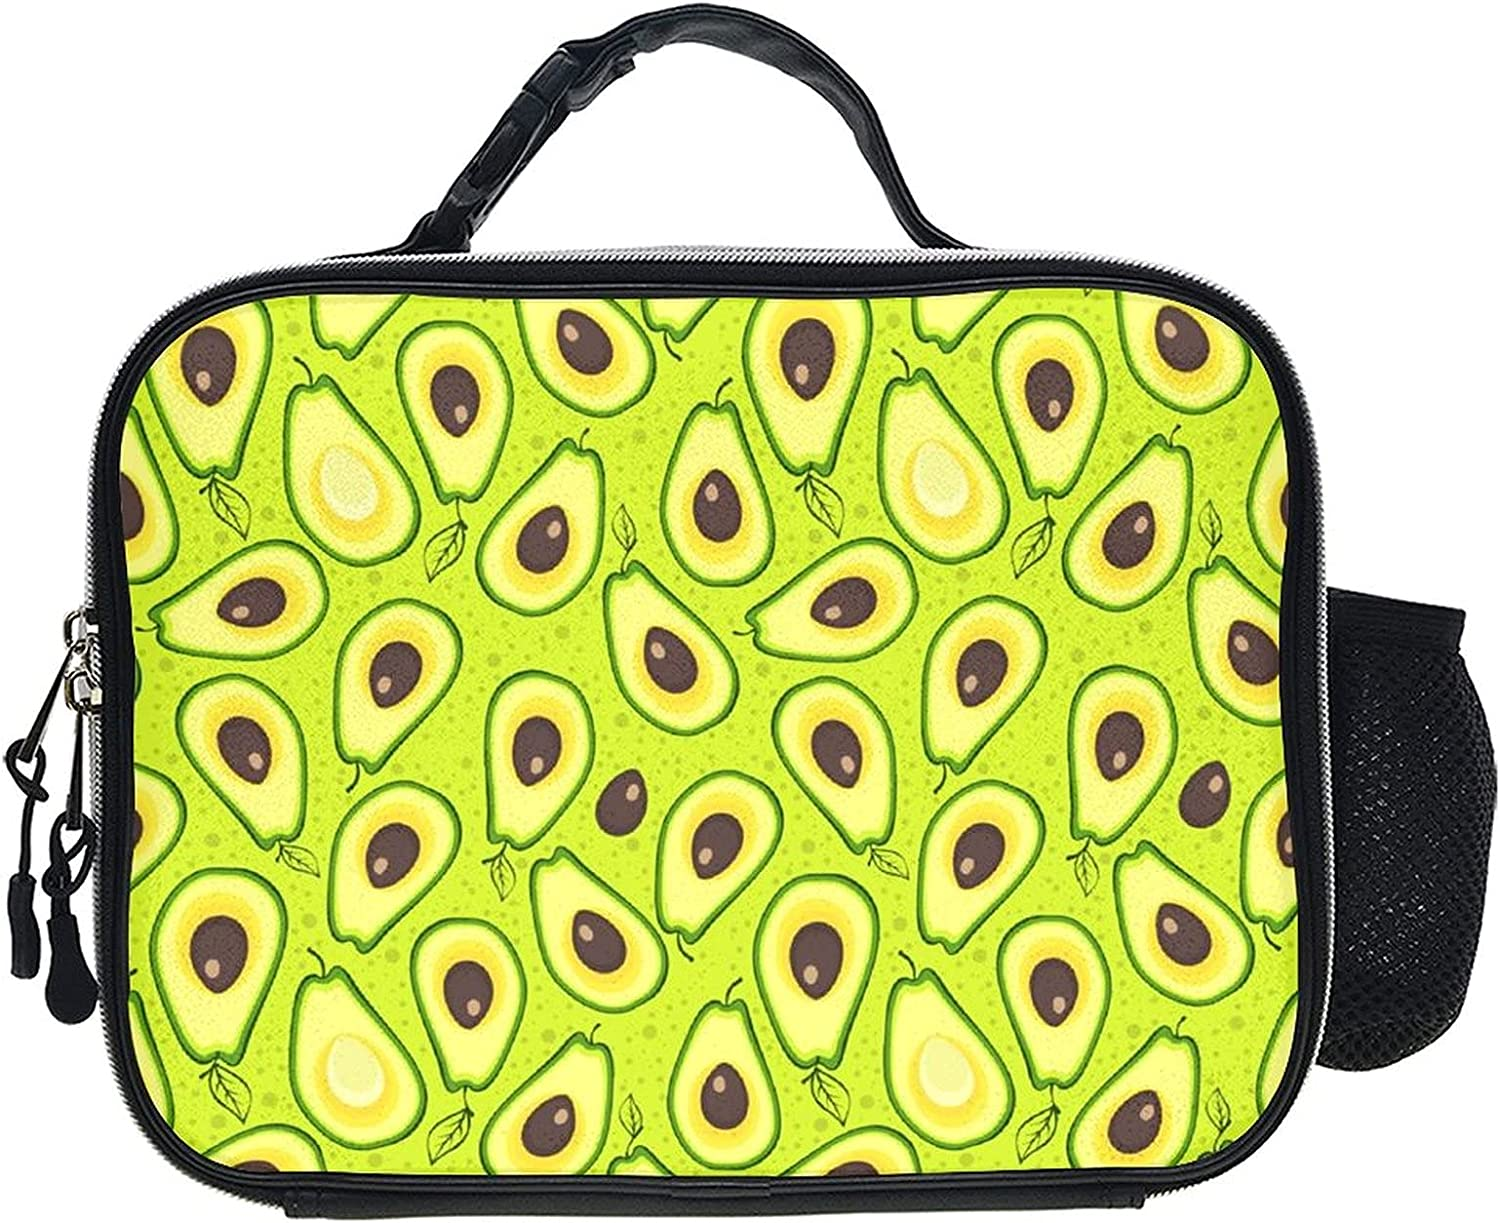 Unisex Girls/Boys Lunch Box Lunchbag Can Hang Backpack Reusable Tote Bag